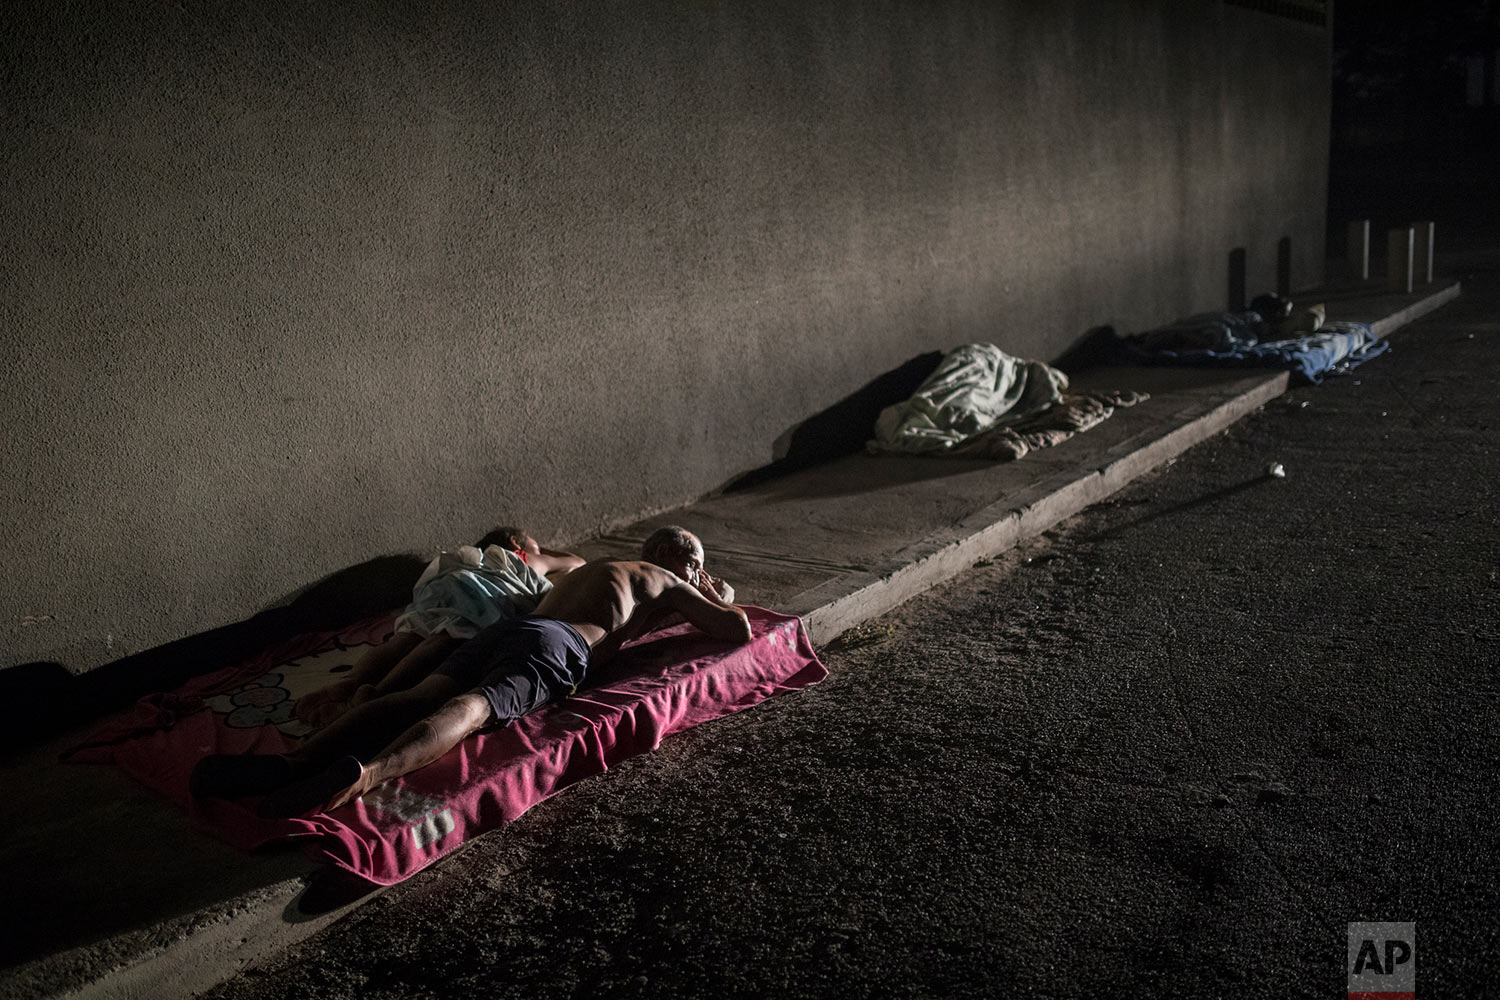 People sleep outside their homes for fresh air while air conditioning is not working during a blackout in the sweltering city of Maracaibo, Venezuela, May 15, 2019. (AP Photo/Rodrigo Abd)